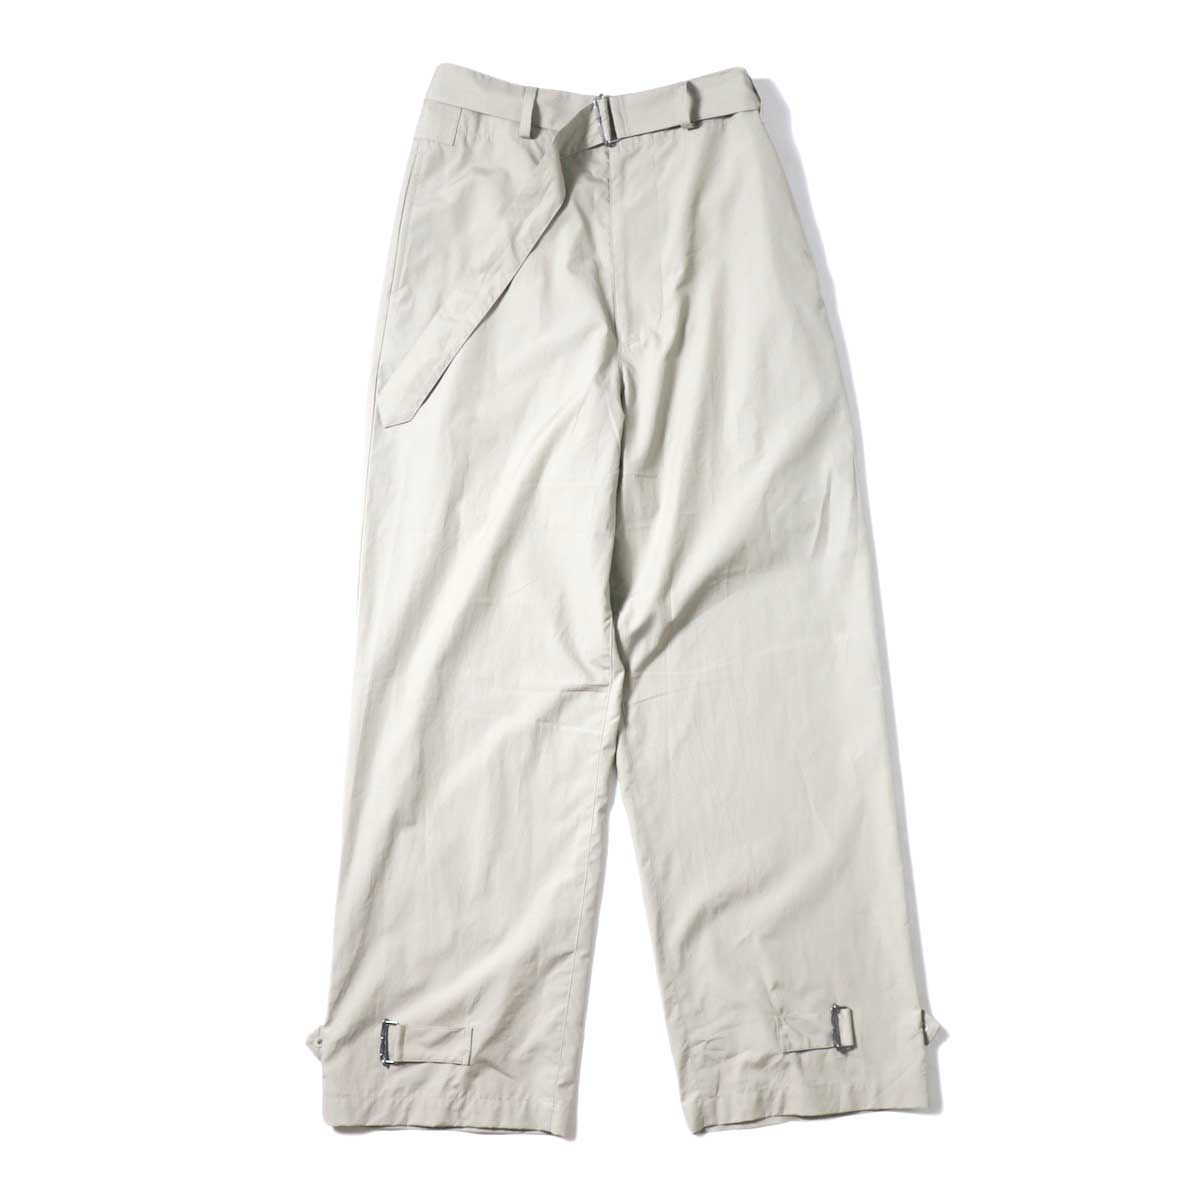 JANE SMITH / BELT ARMY PANRS (Beige) 正面②